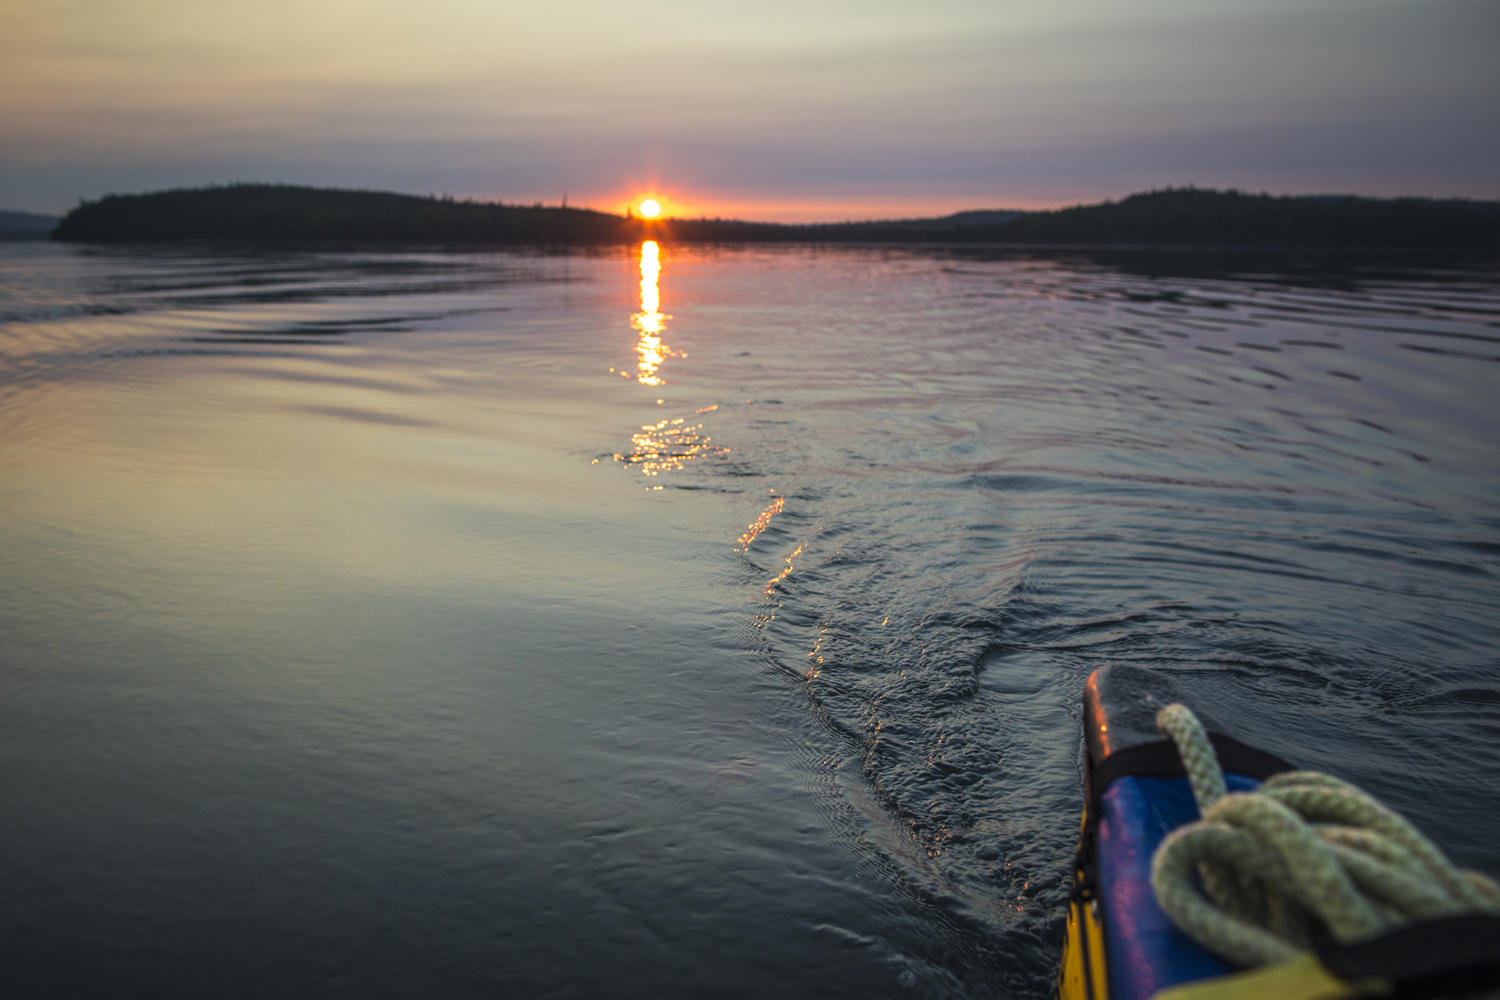 Looking back from stern of canoe into a sunset.